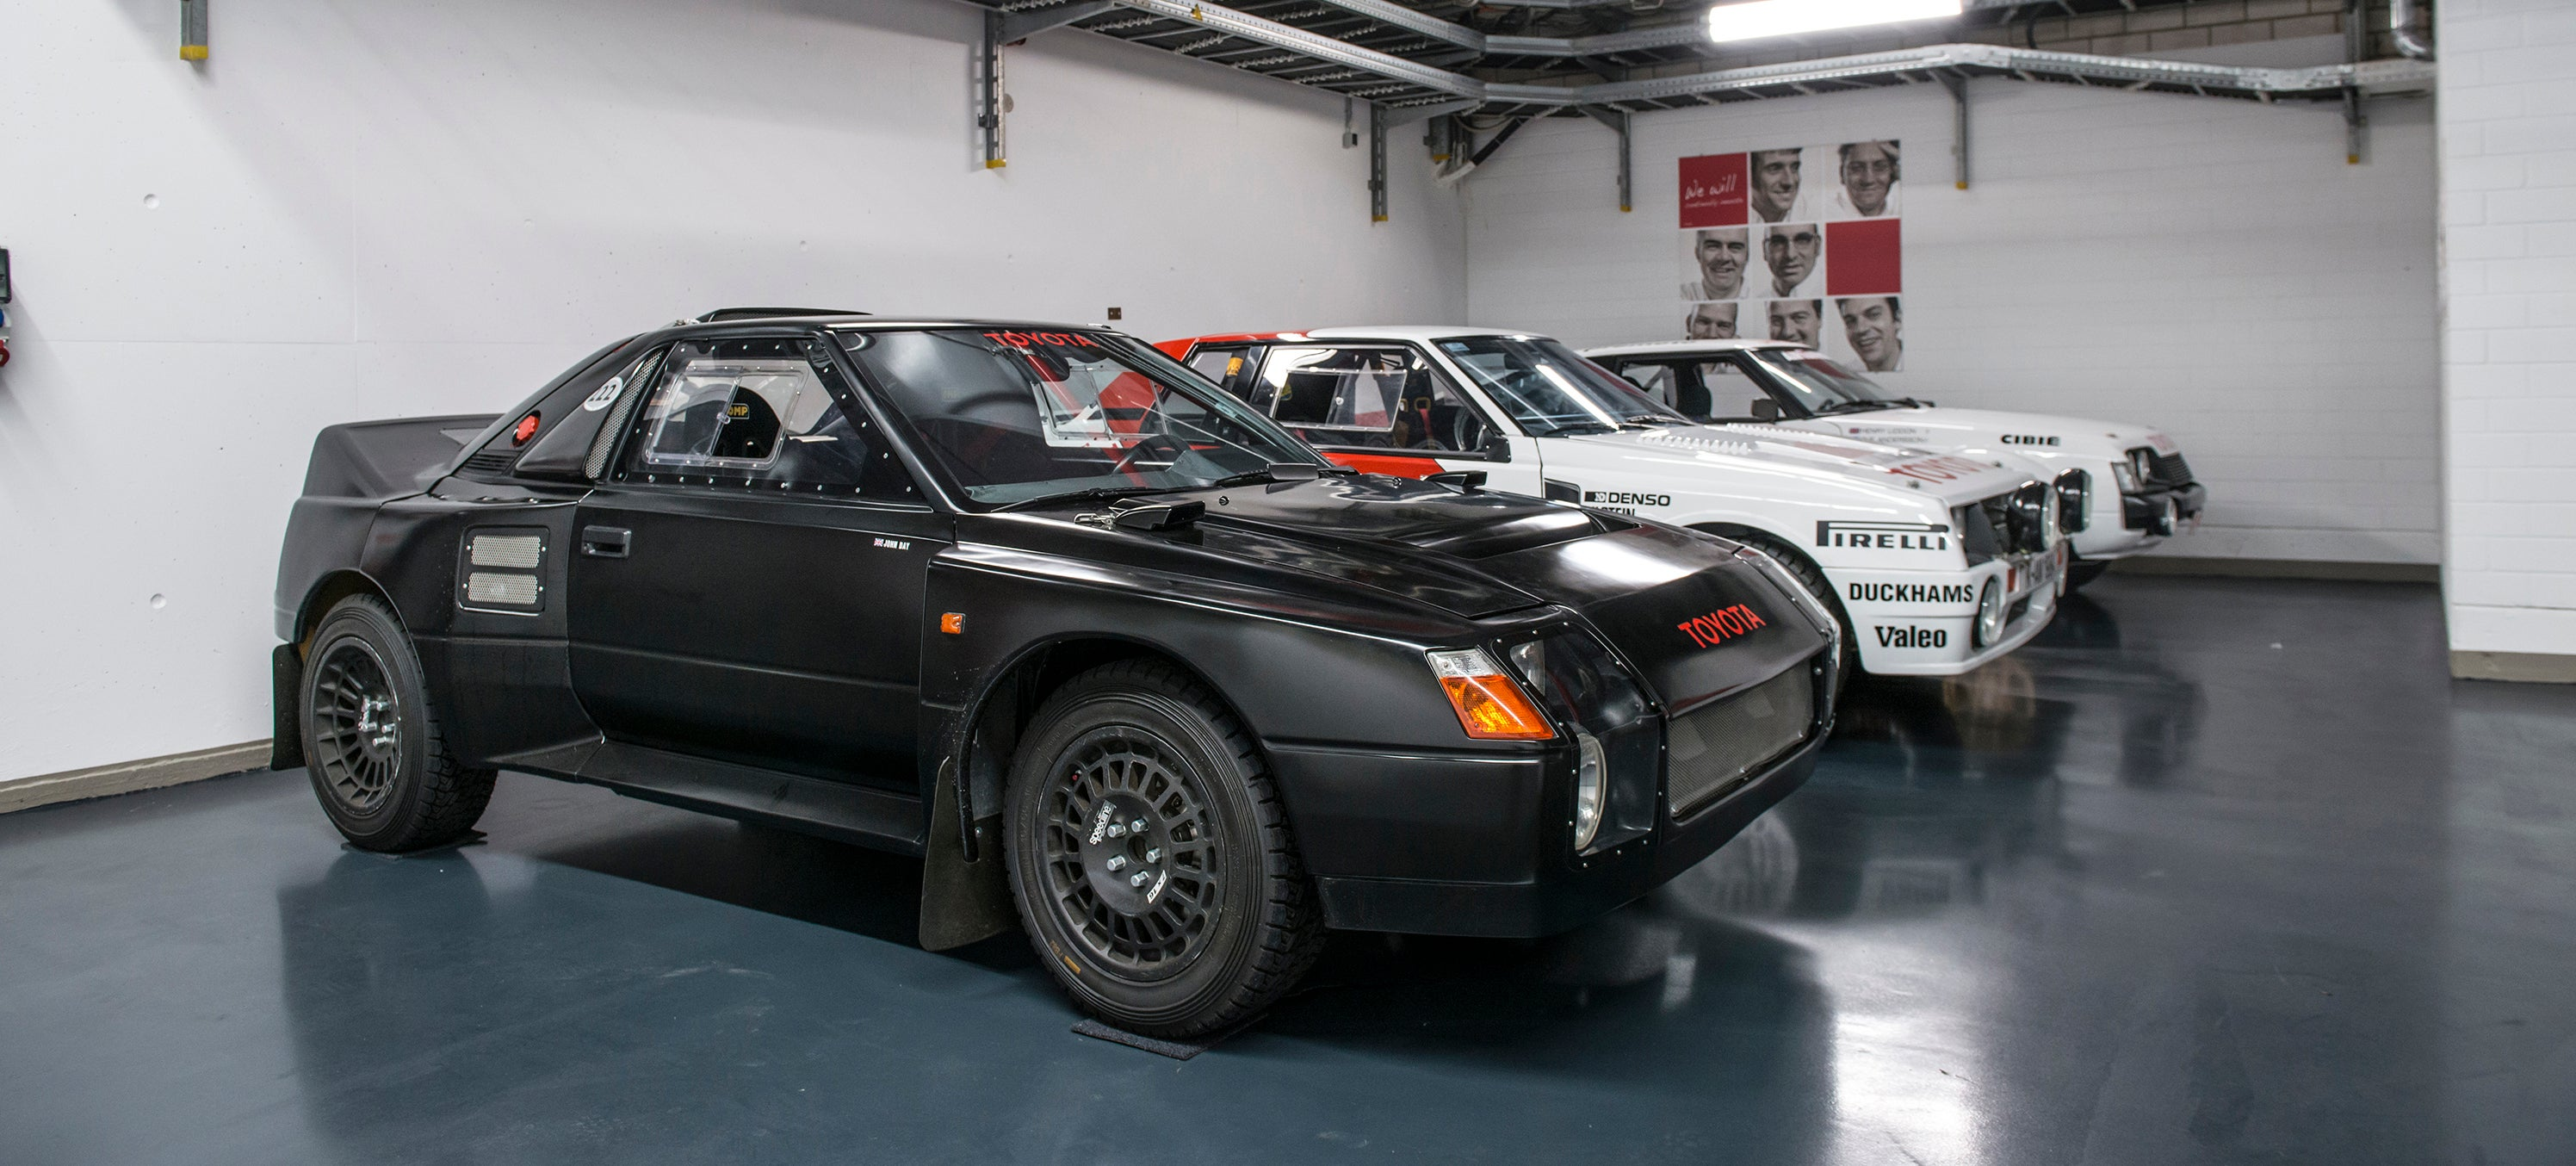 toyota 39 s secret garage of rally cars toyota nation forum toyota car and truck forums. Black Bedroom Furniture Sets. Home Design Ideas